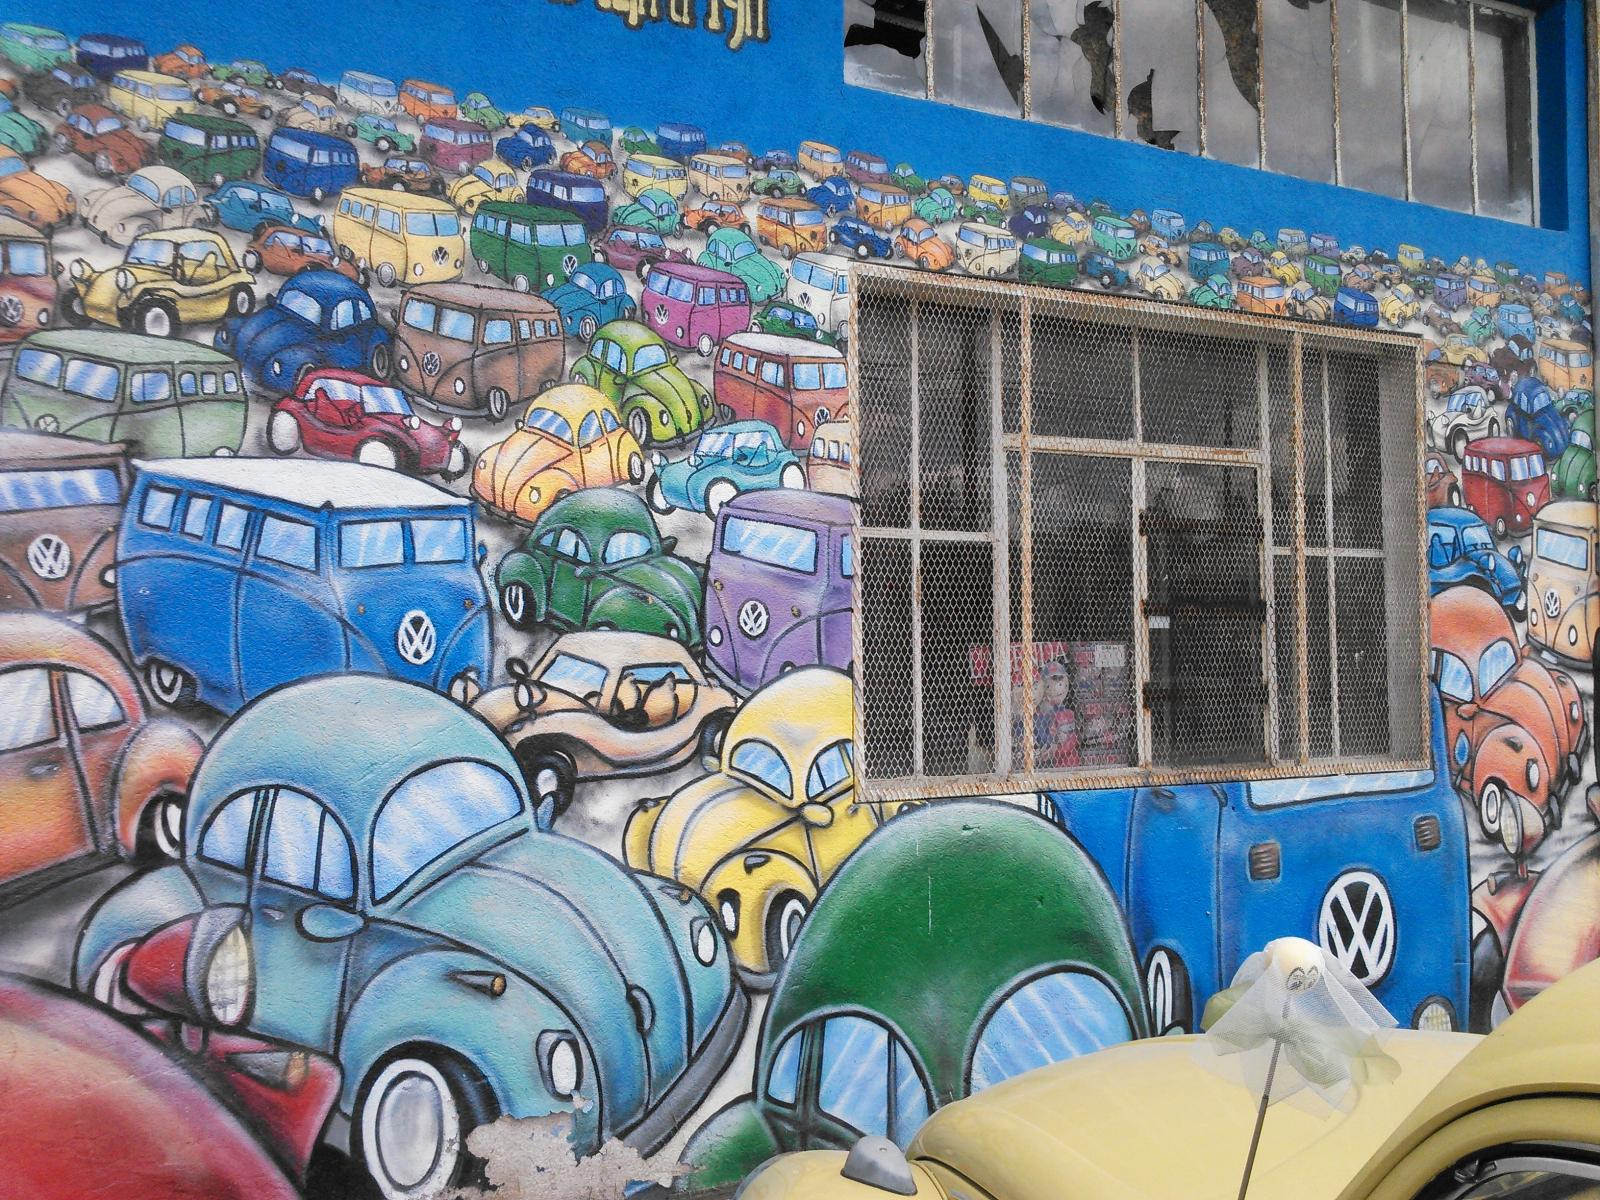 Teo's Z mural wall